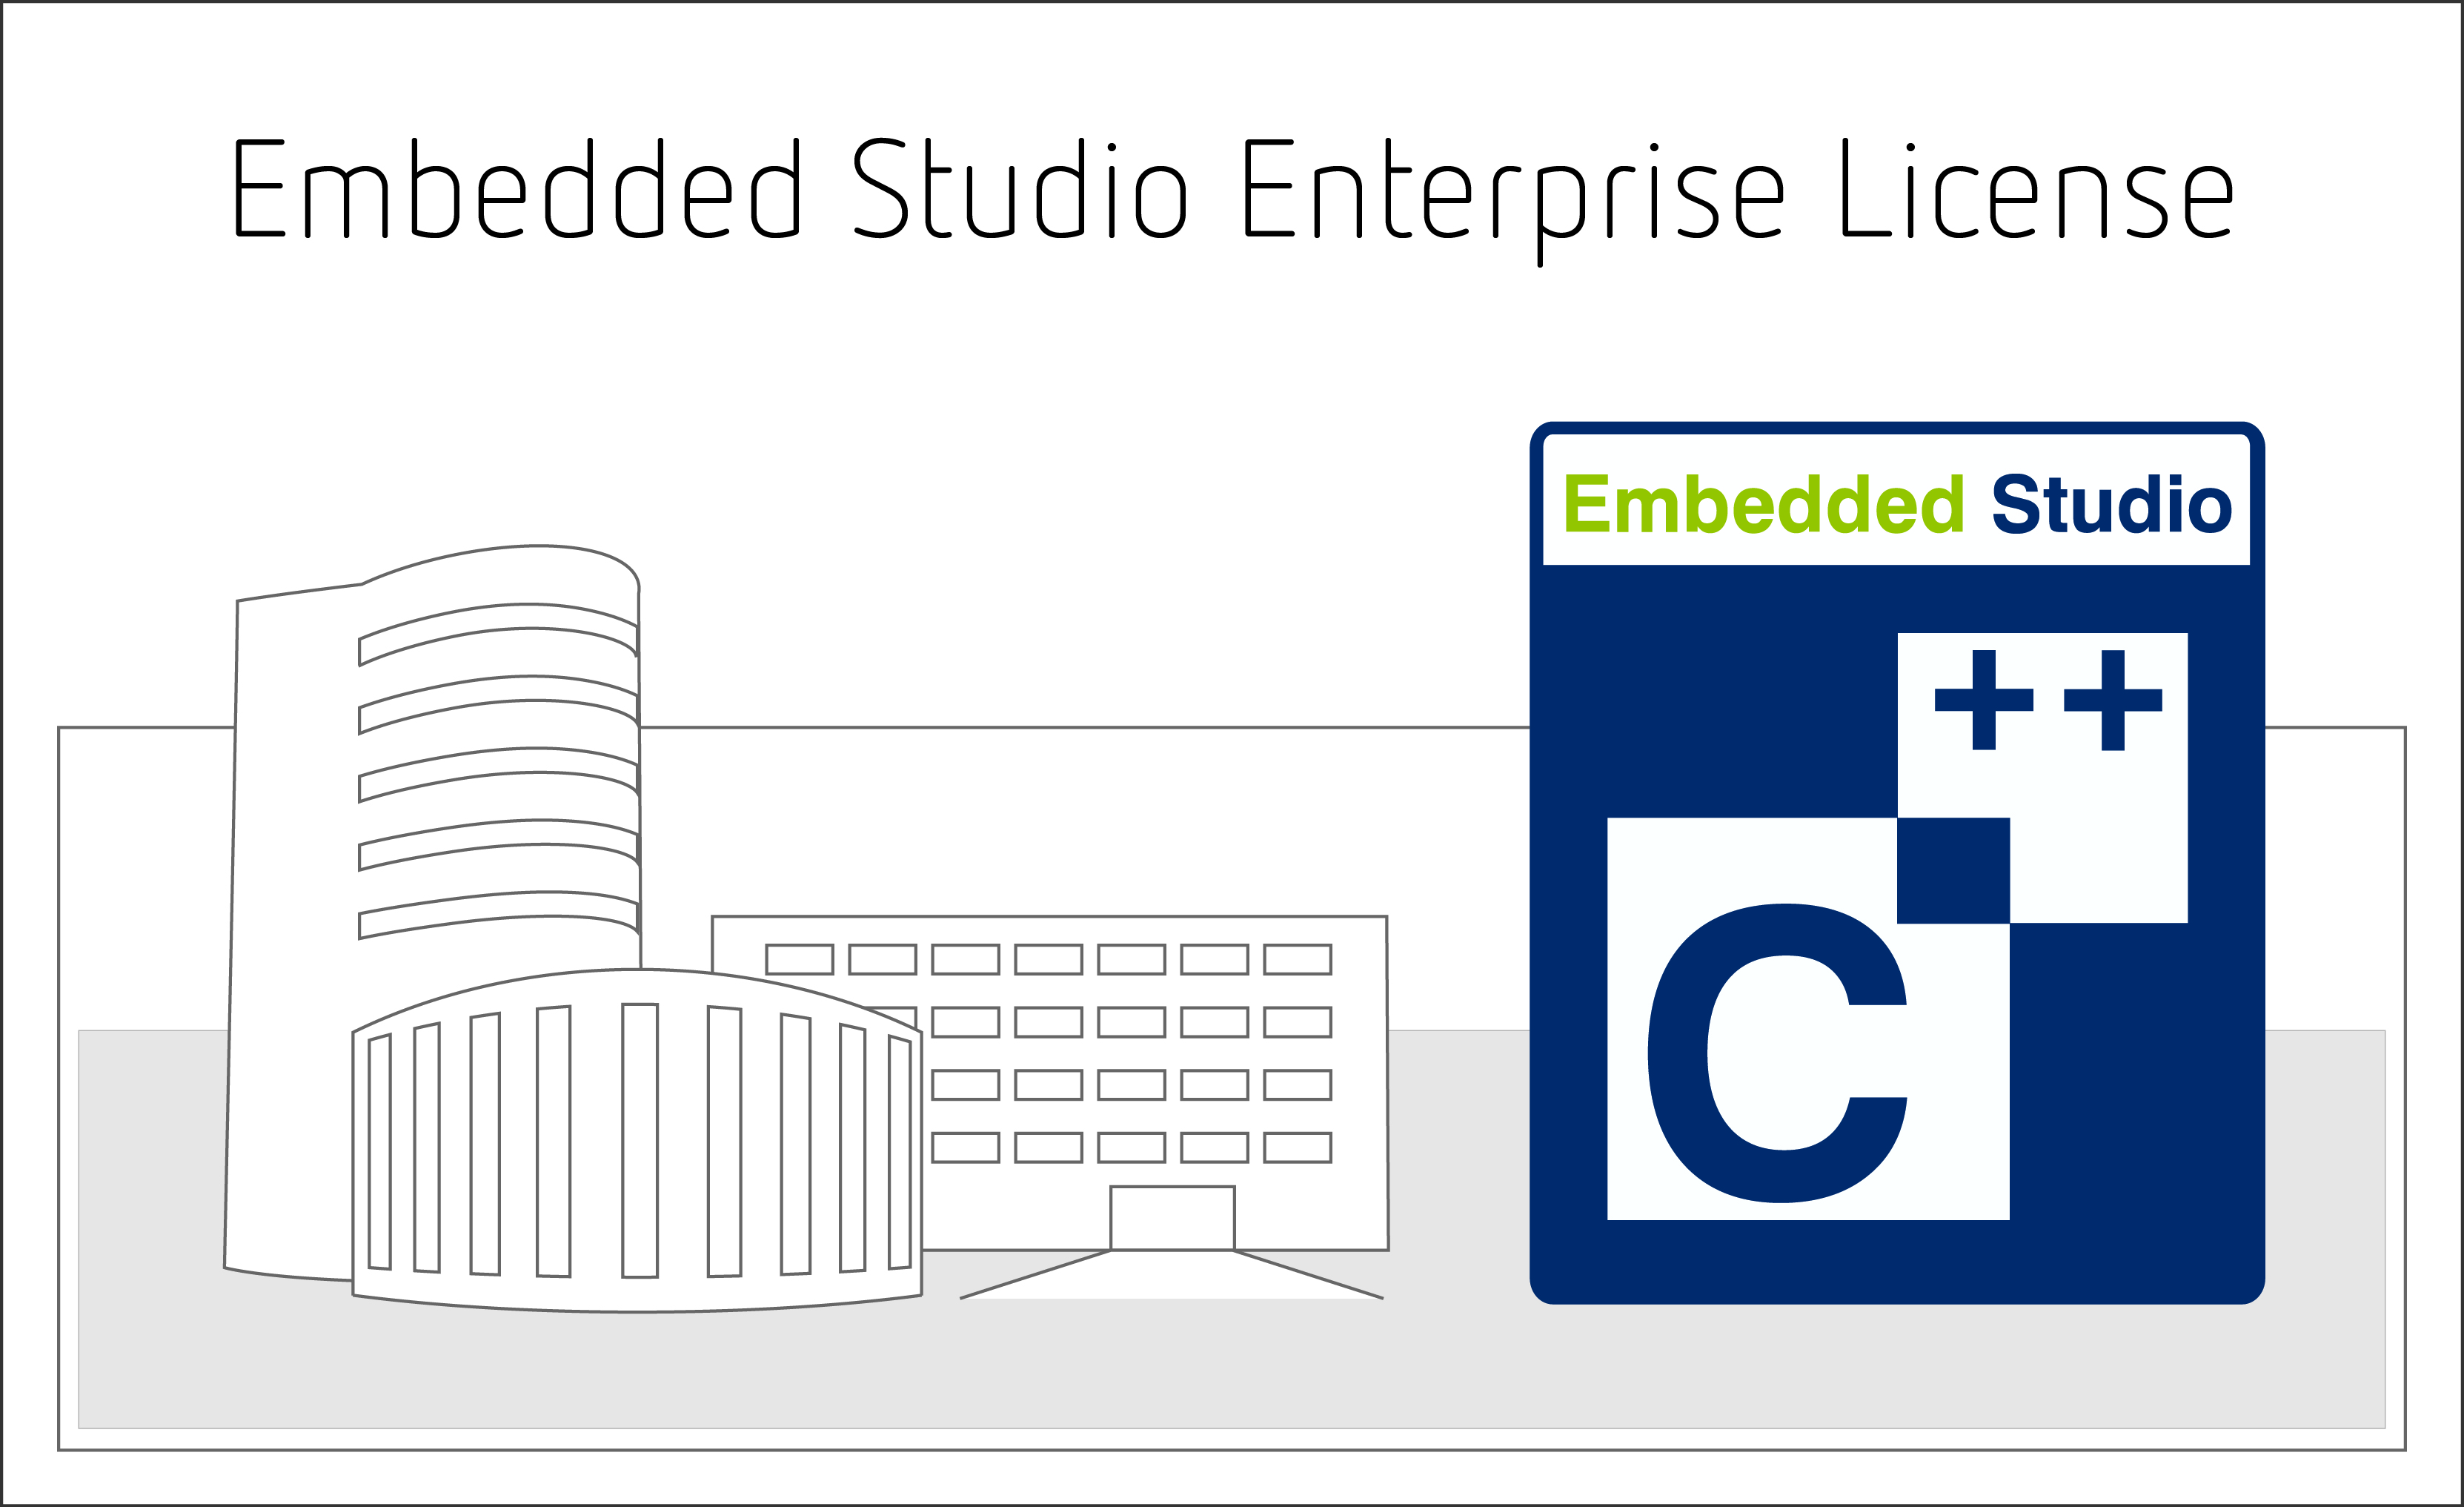 SEGGER introduces Enterprise License for Embedded Studio